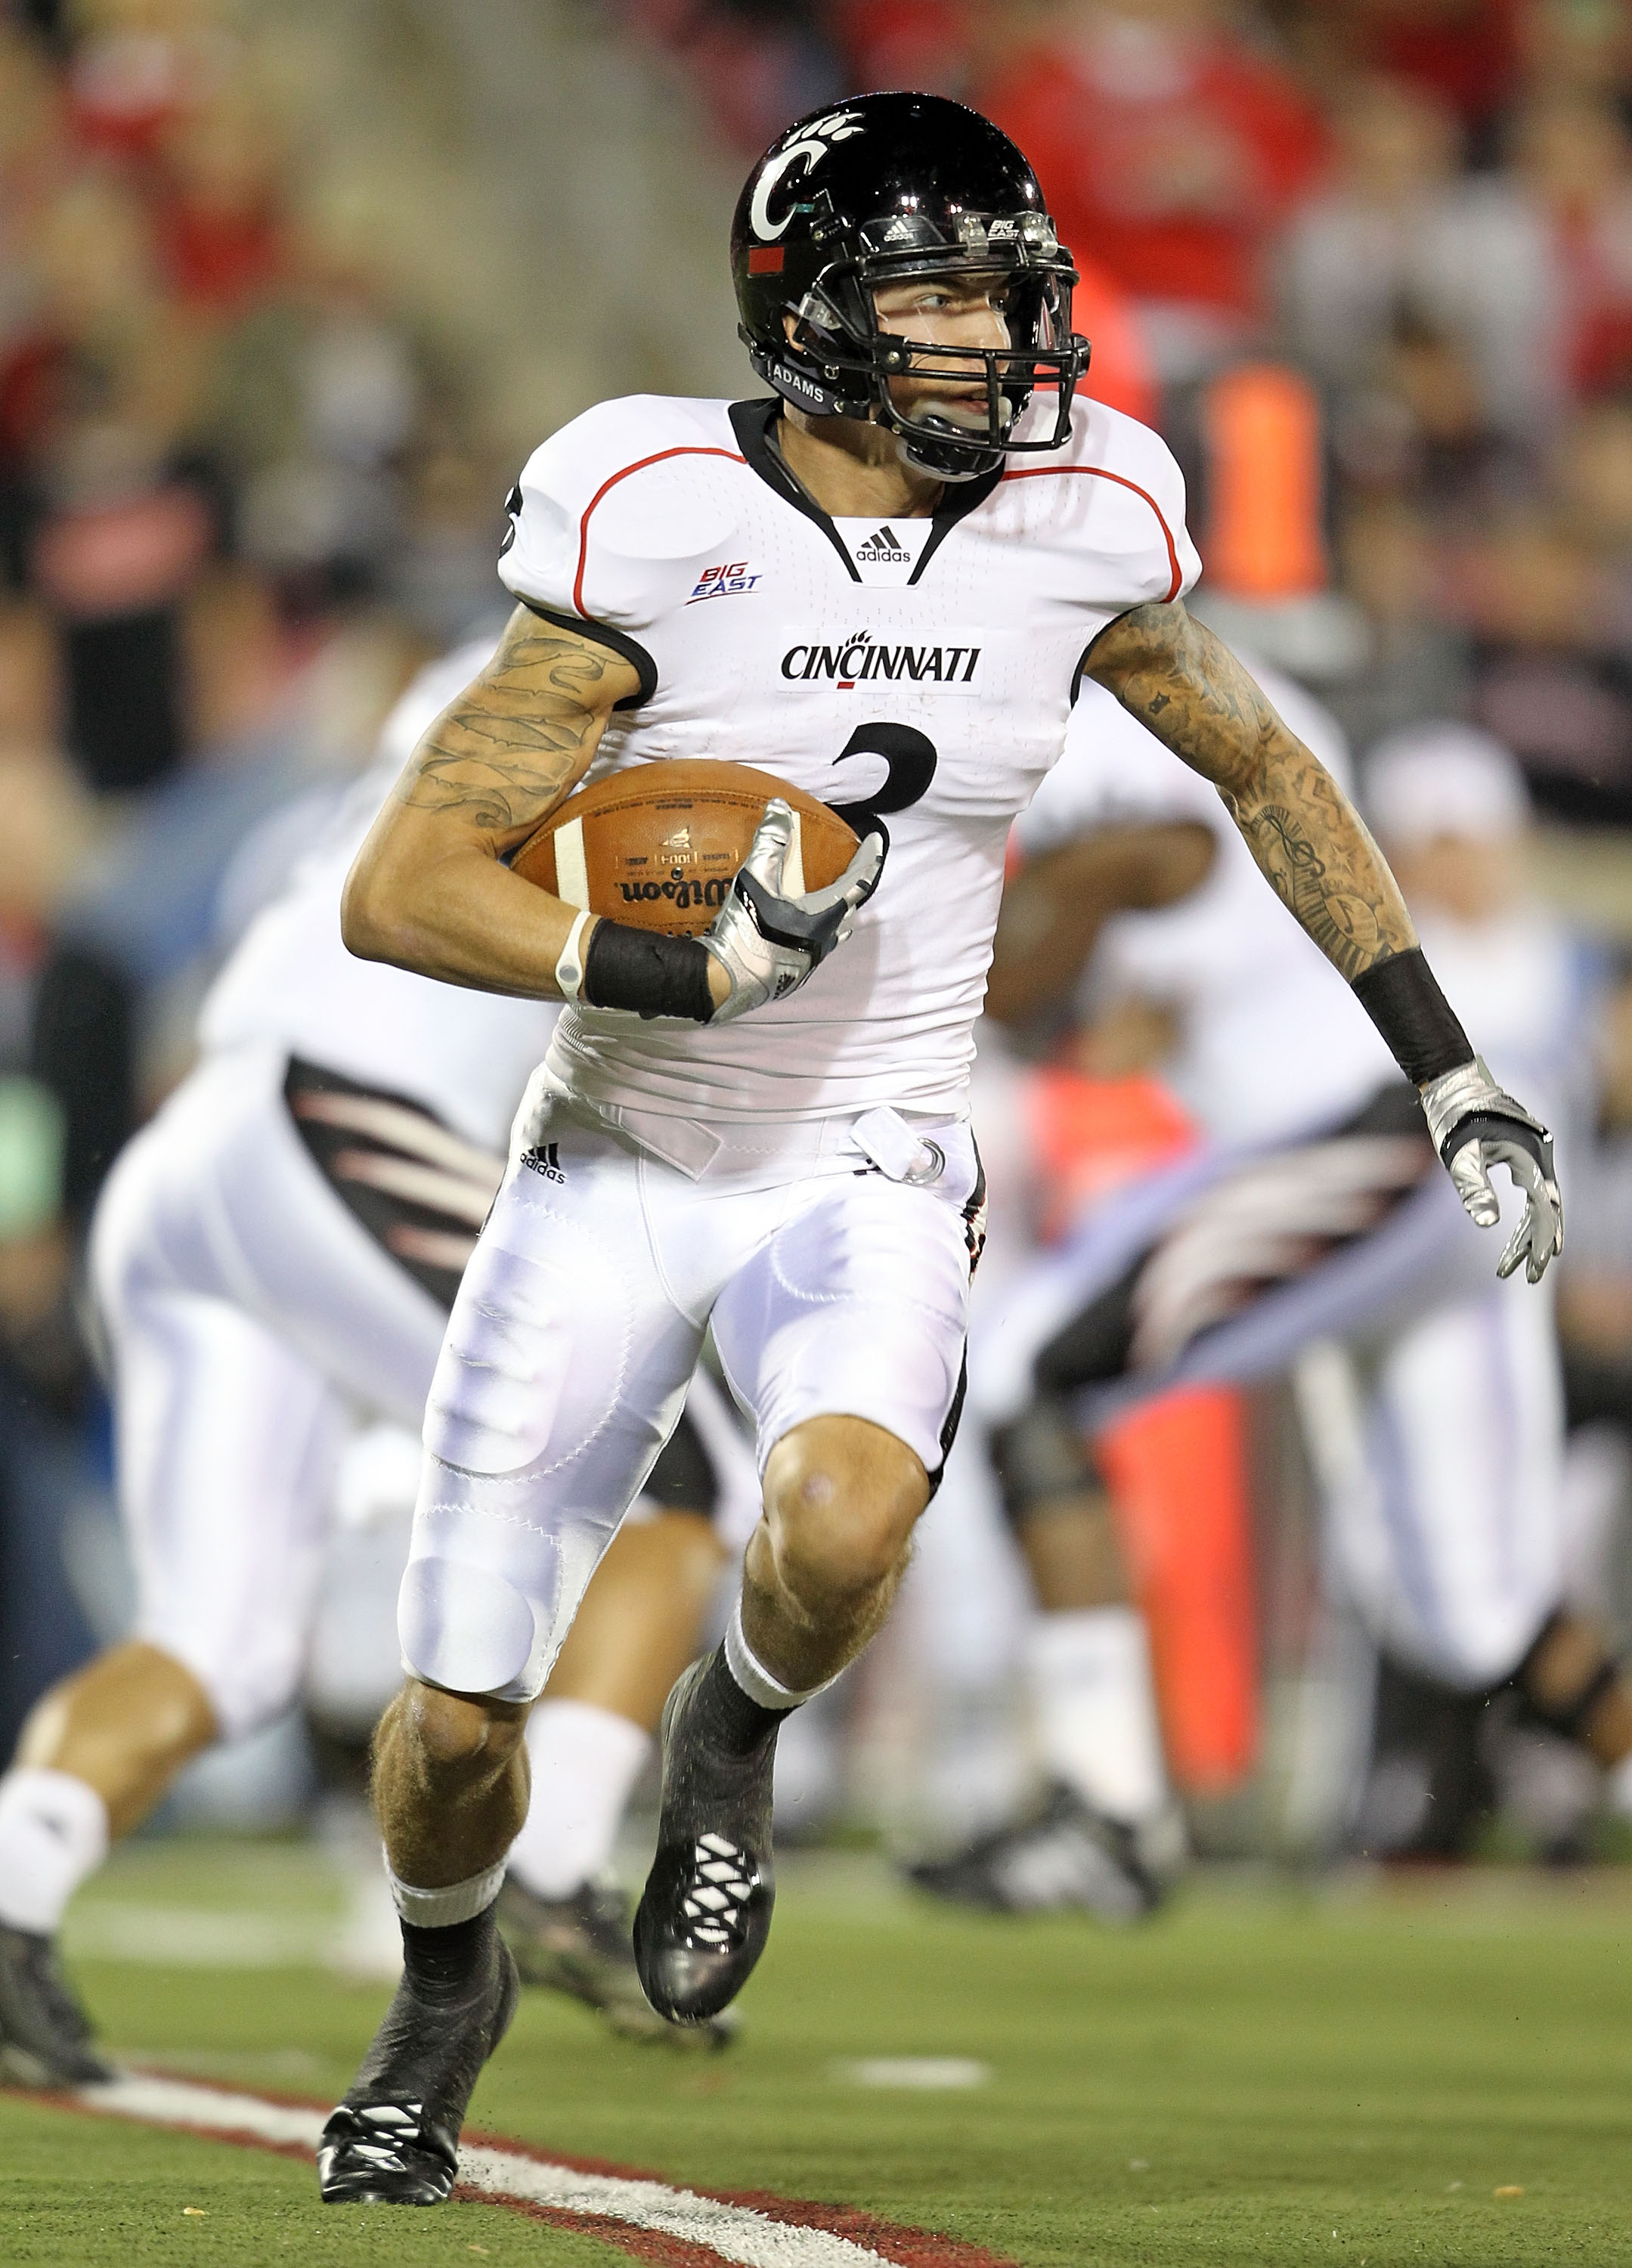 LOUISVILLE, KY - OCTOBER 15:  D J Woods #3 of the Cincinnati Bearcats runs with the ball during the Big East Conference game against the Louisville Cardinals at Papa John's Cardinal Stadium on October 15, 2010 in Louisville, Kentucky.  (Photo by Andy Lyon